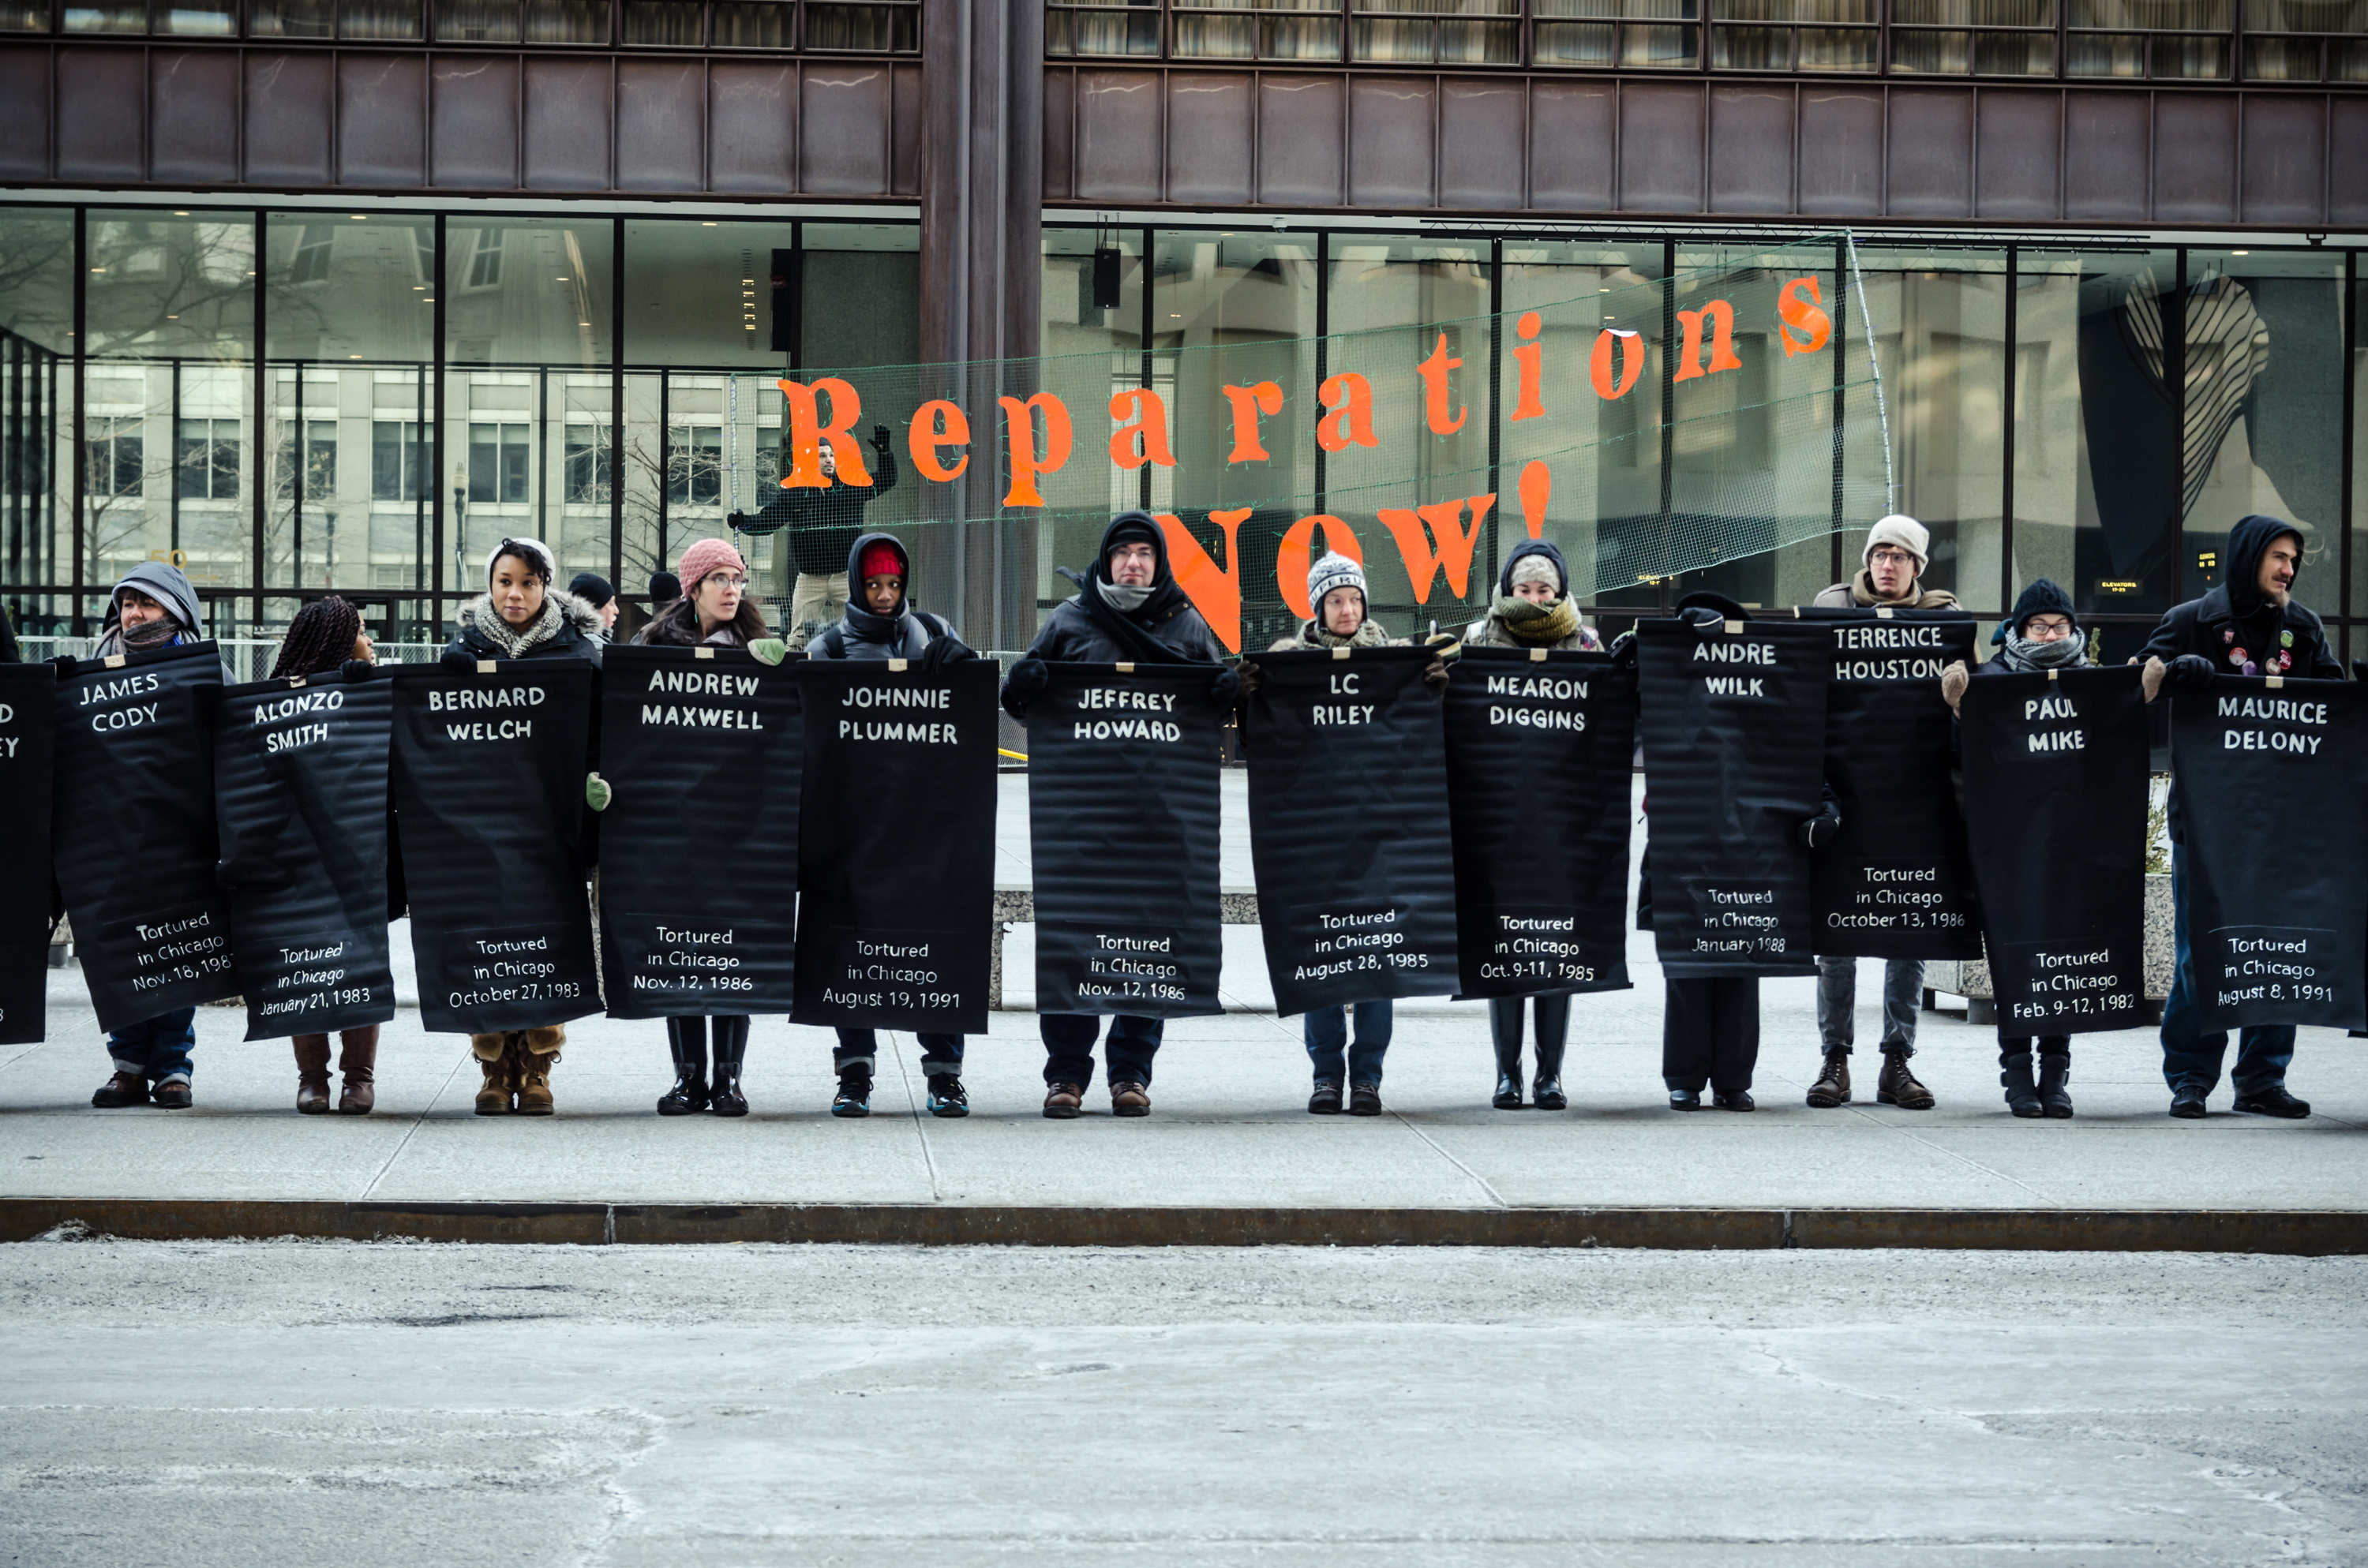 "Image: People lined up facing the camera. They are holding up Black posters with the names of victims of torture by Chicago Police inscribed in white. Behind them is a transparent banner with the words ""Reparations NOW!"" inscribed in orange. Photo taken February 2015 at the Rally for Reparations organized by The Chicago Torture-Justice Memorials, Project NIA, Amnesty International USA, and We Charge Genocide. Photo courtesy of the artist."